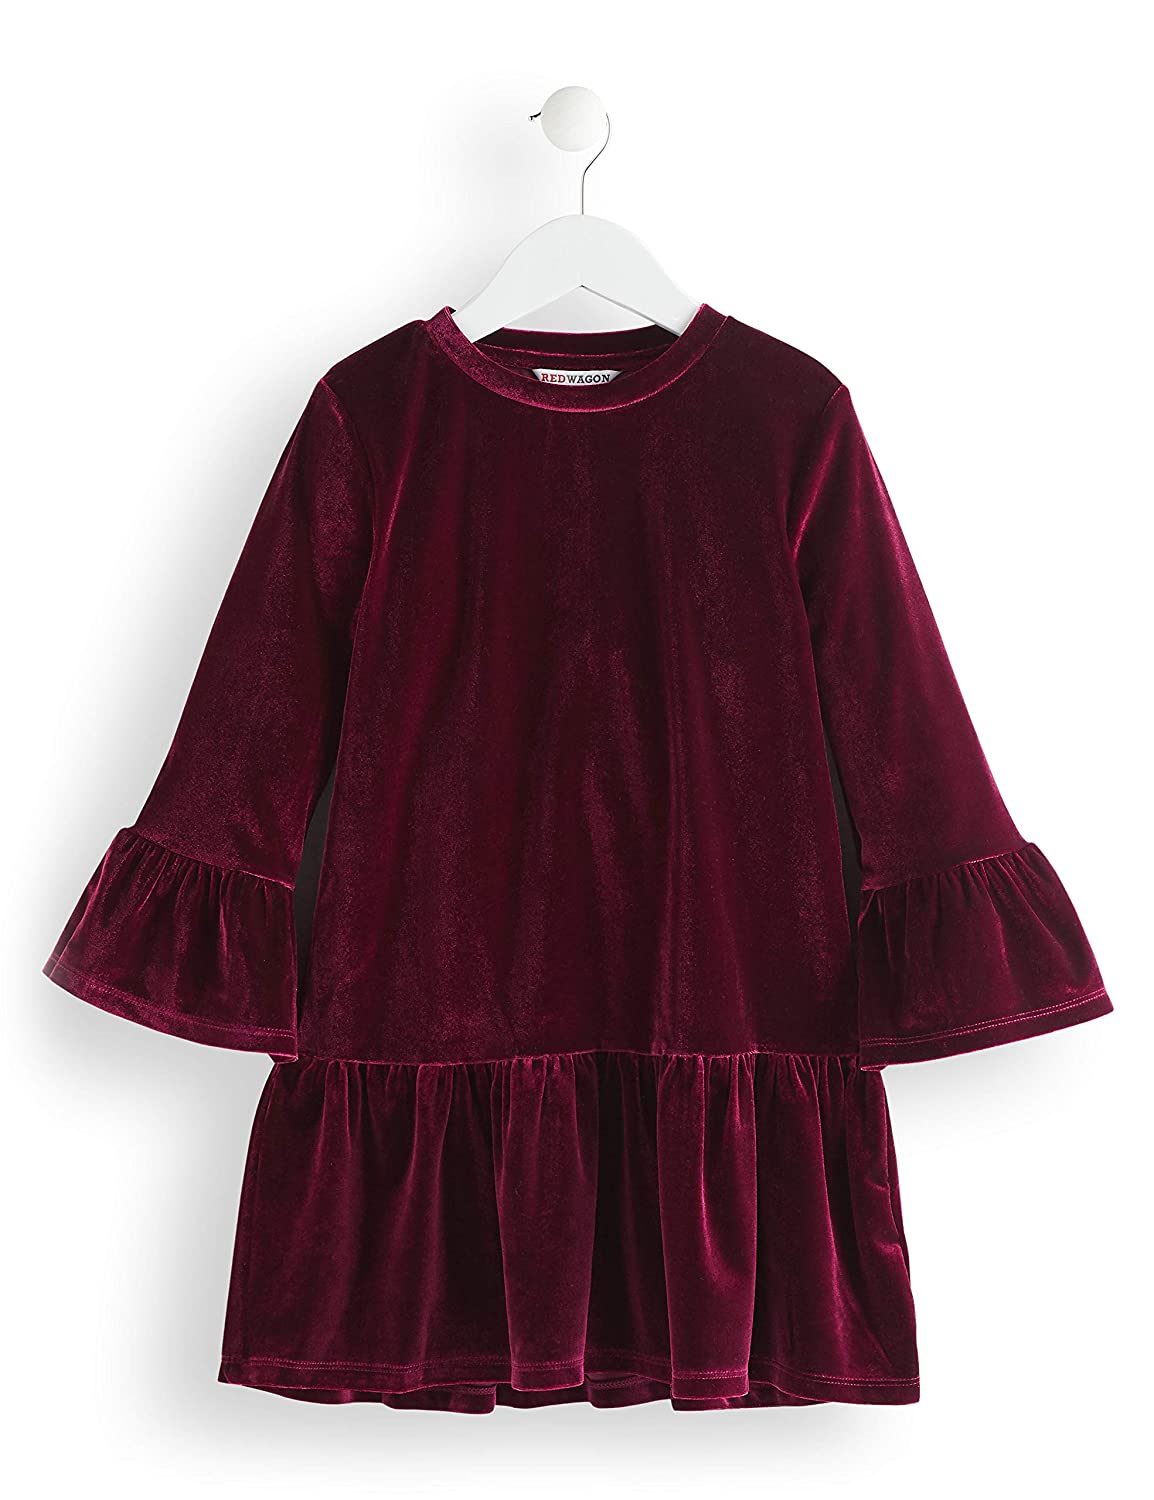 46f3a6473ec94 Amazon Brand - RED WAGON Girl's Velvet Party Dress